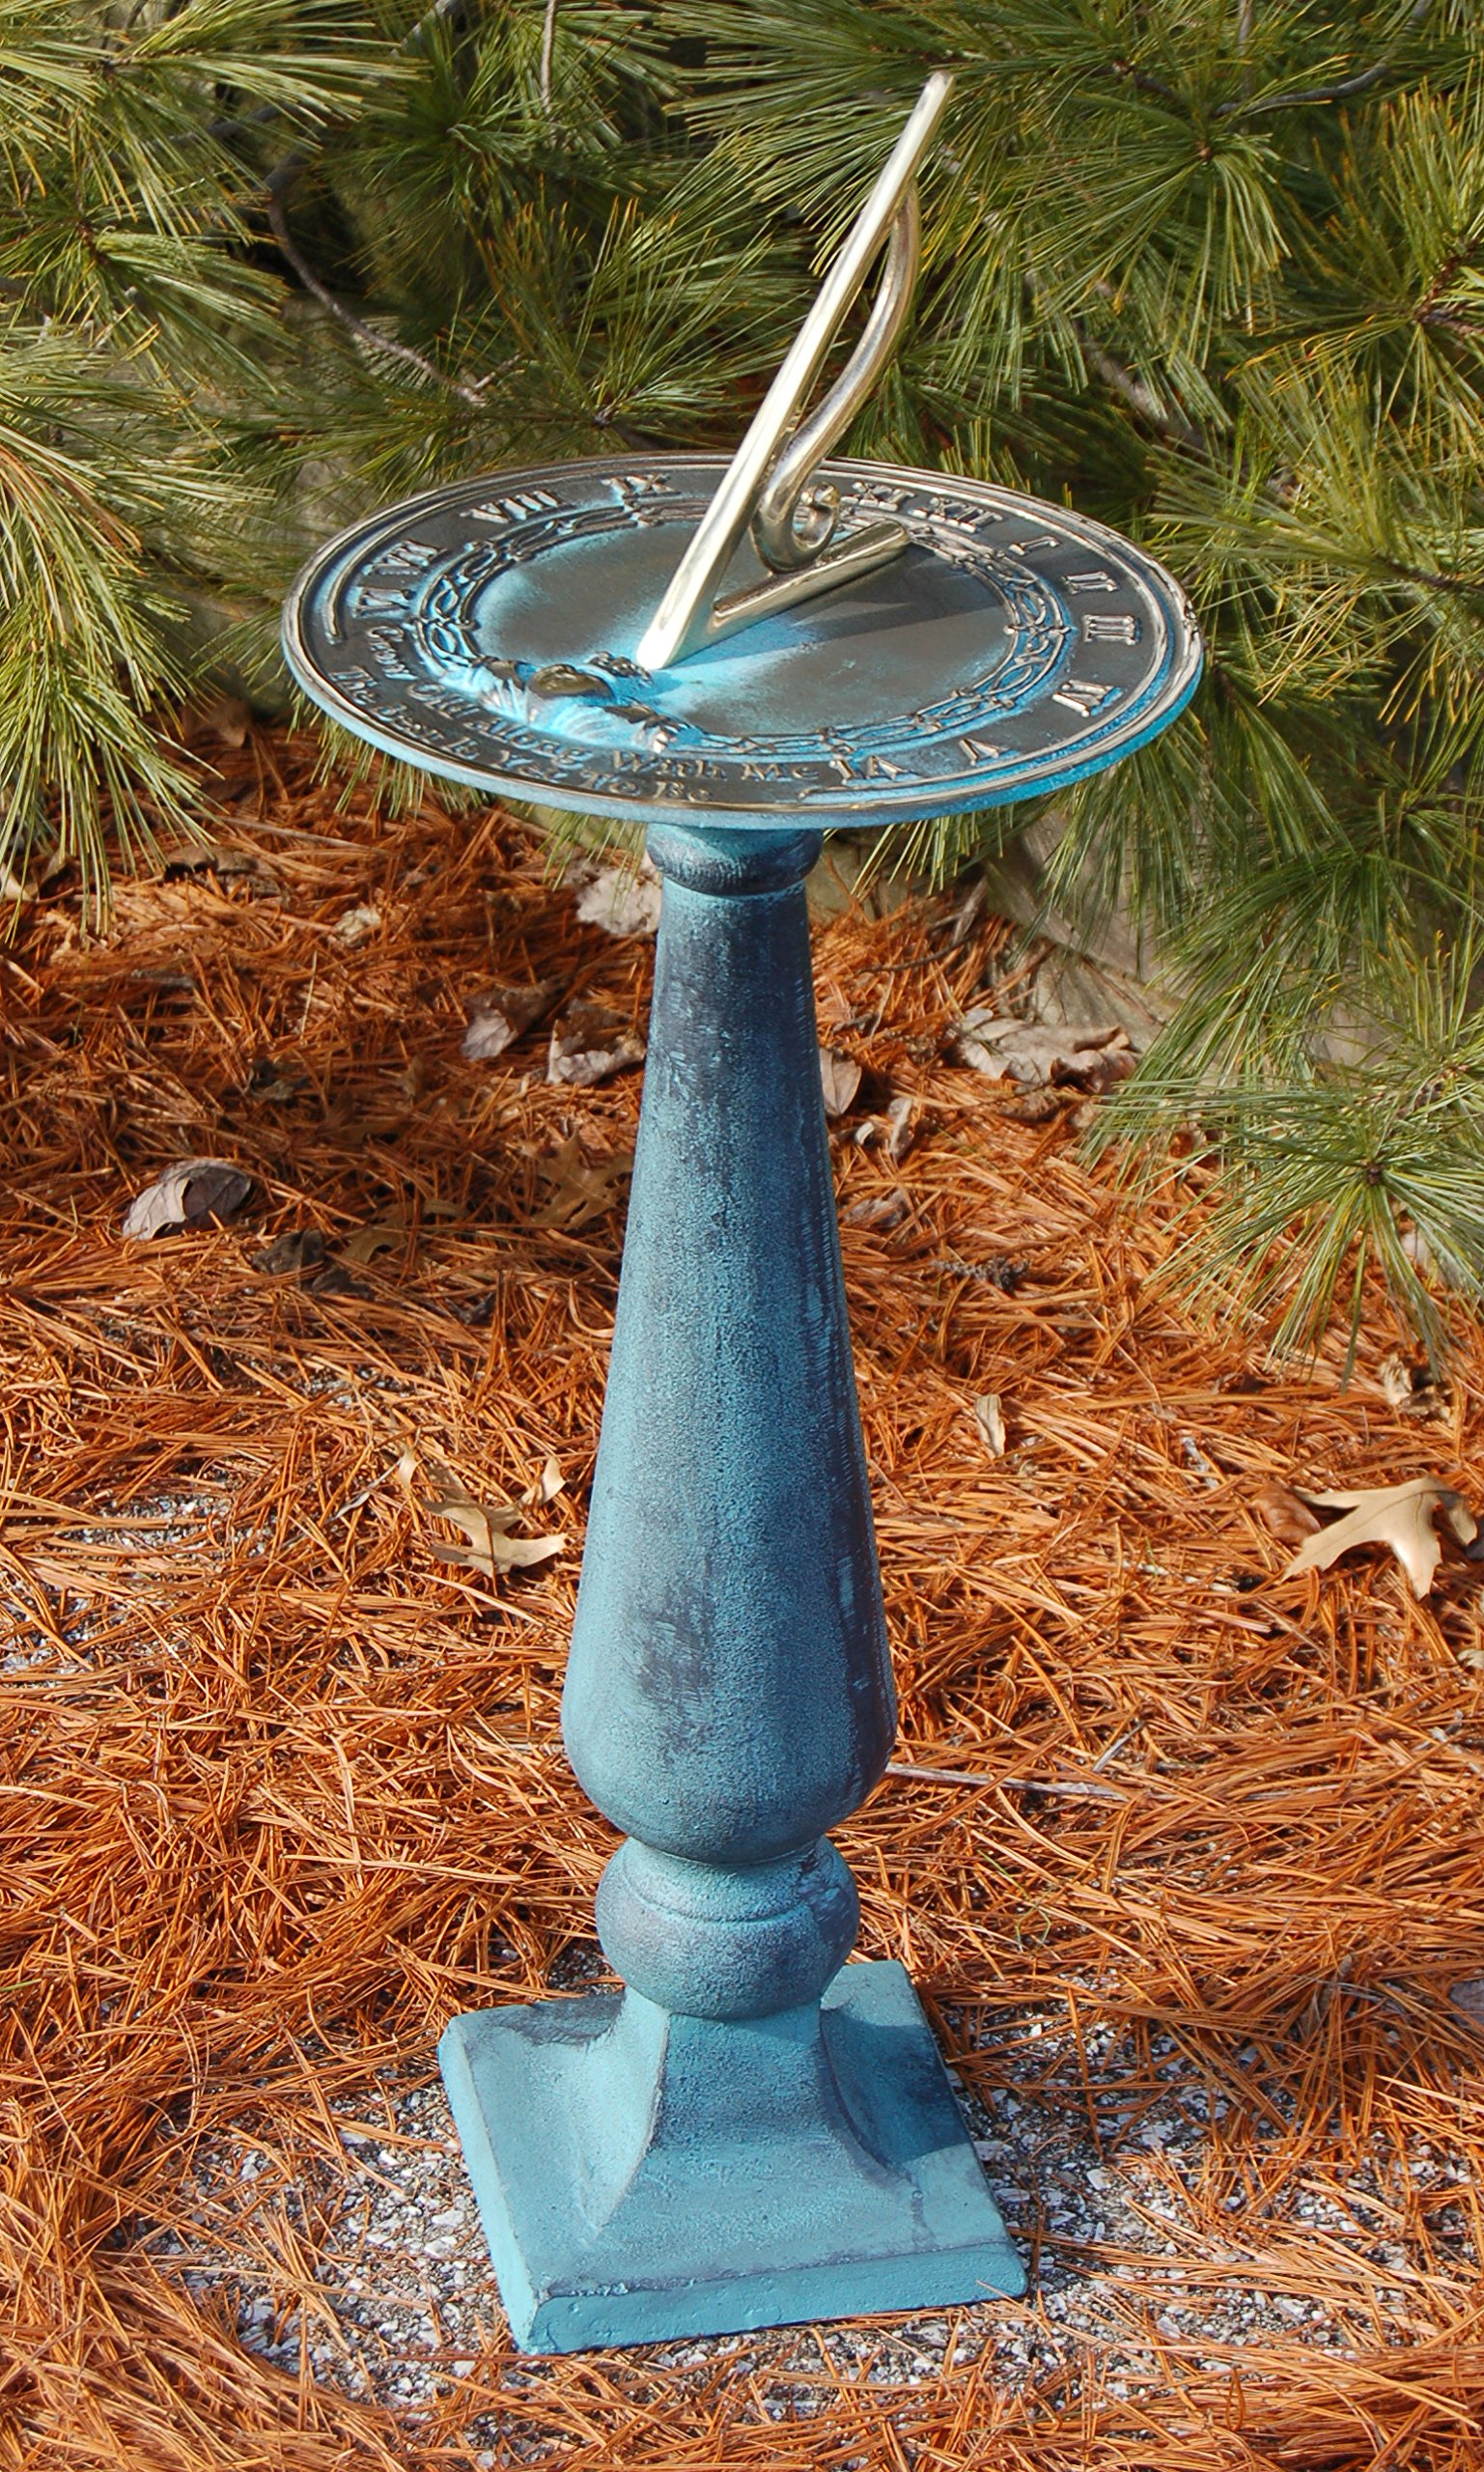 Amazon.com : Rome Grow Old With Me Sundial and Baluster Pedestal ...